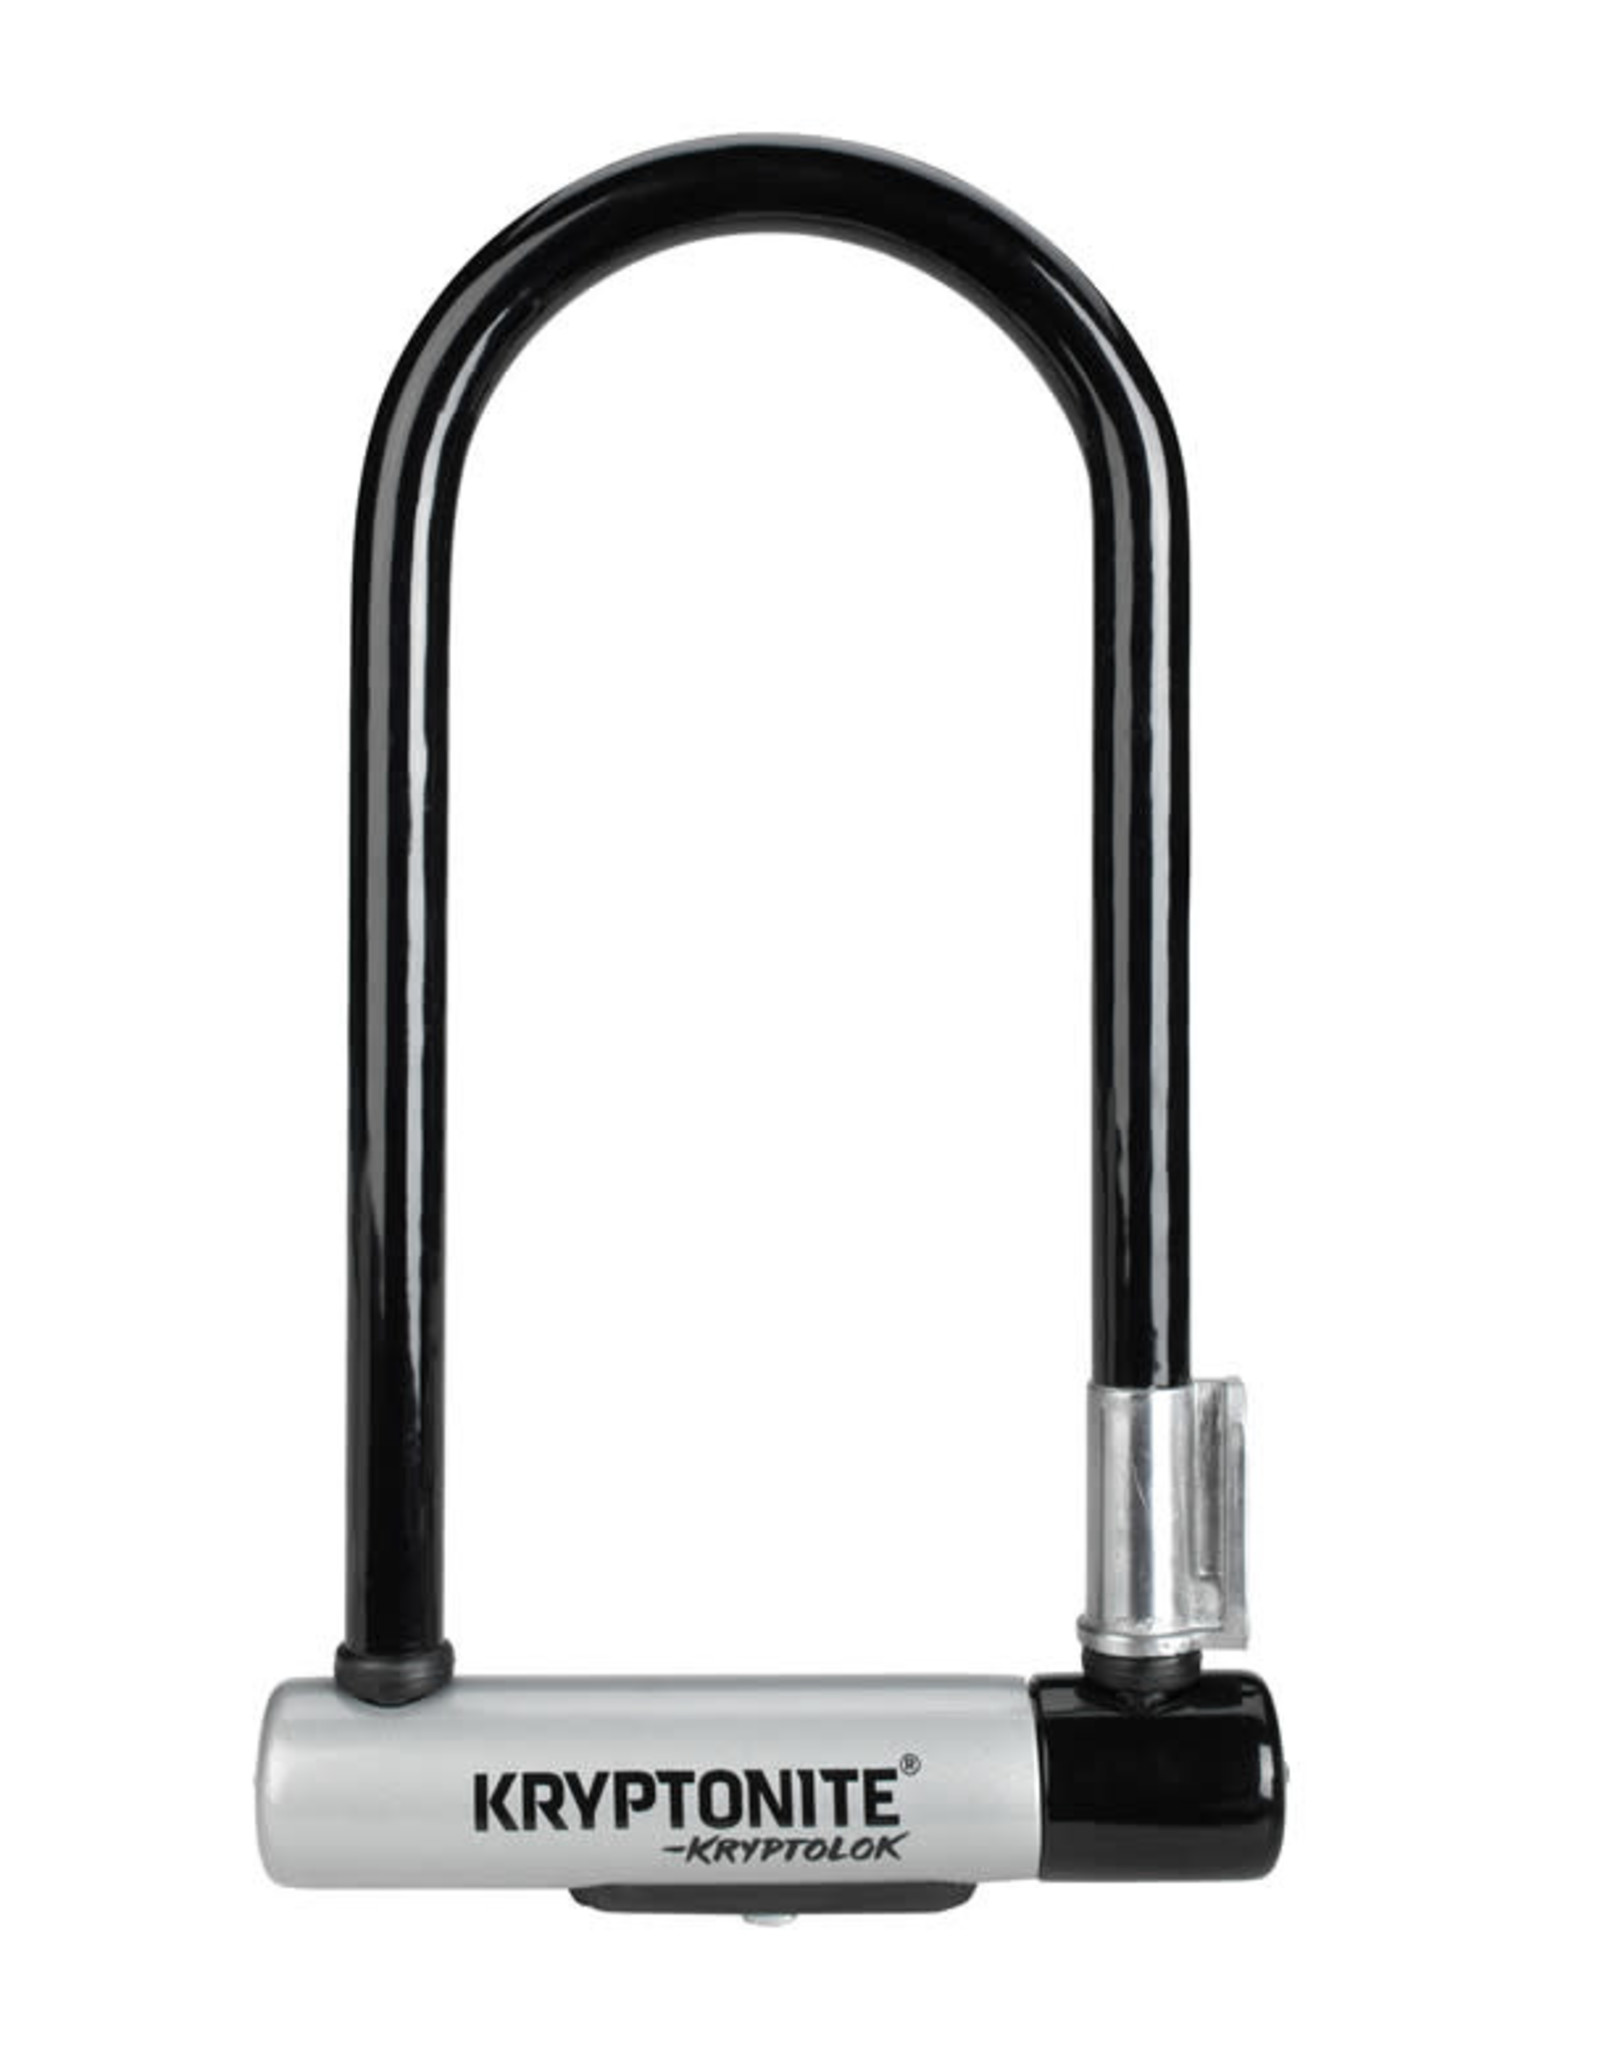 Kryptonite Kryptolok